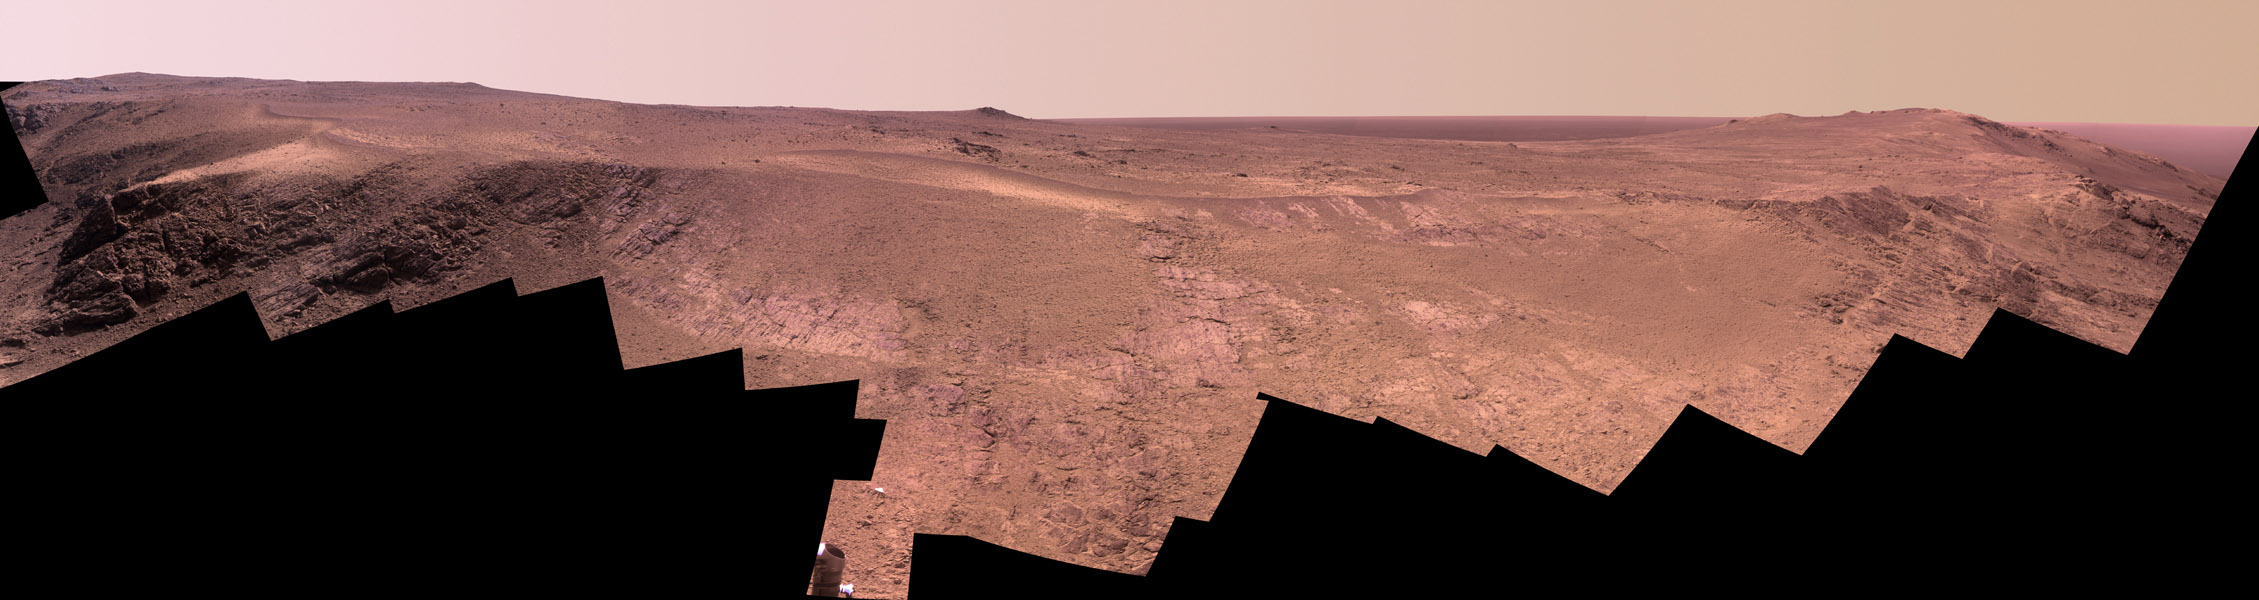 A ridge called 'Rocheport' on the western rim of Mars' Endeavour Crater spans this mosaic of images from the panoramic camera (Pancam) on NASA's Mars Exploration Rover Opportunity.